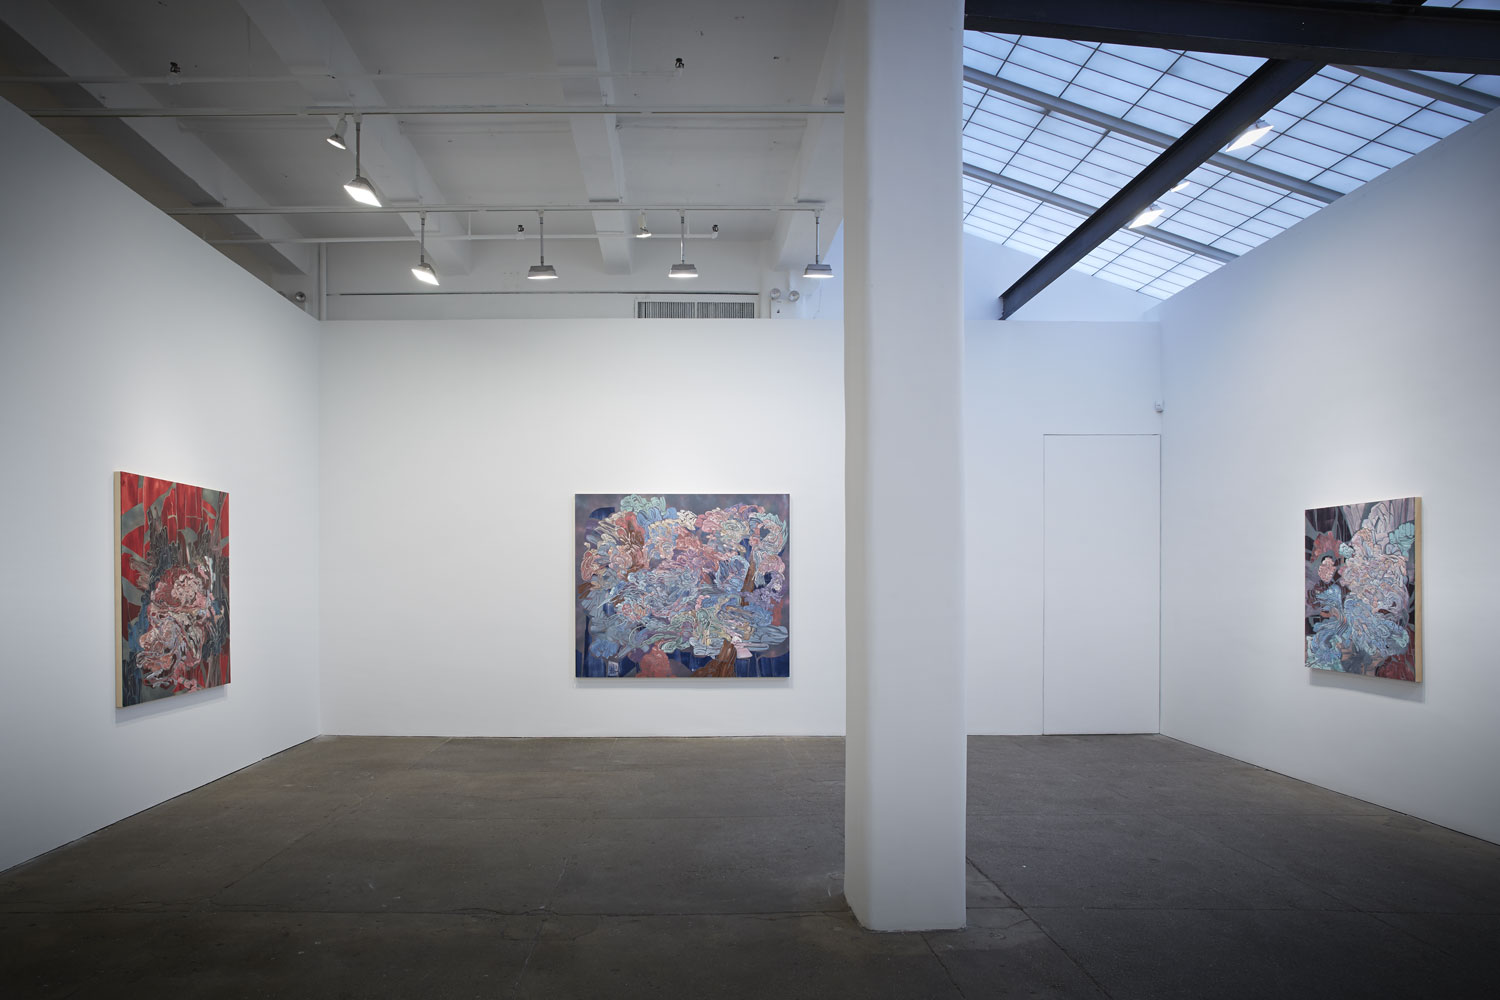 Footprints On the Ceiling, 2014   Galerie Lelong, New York